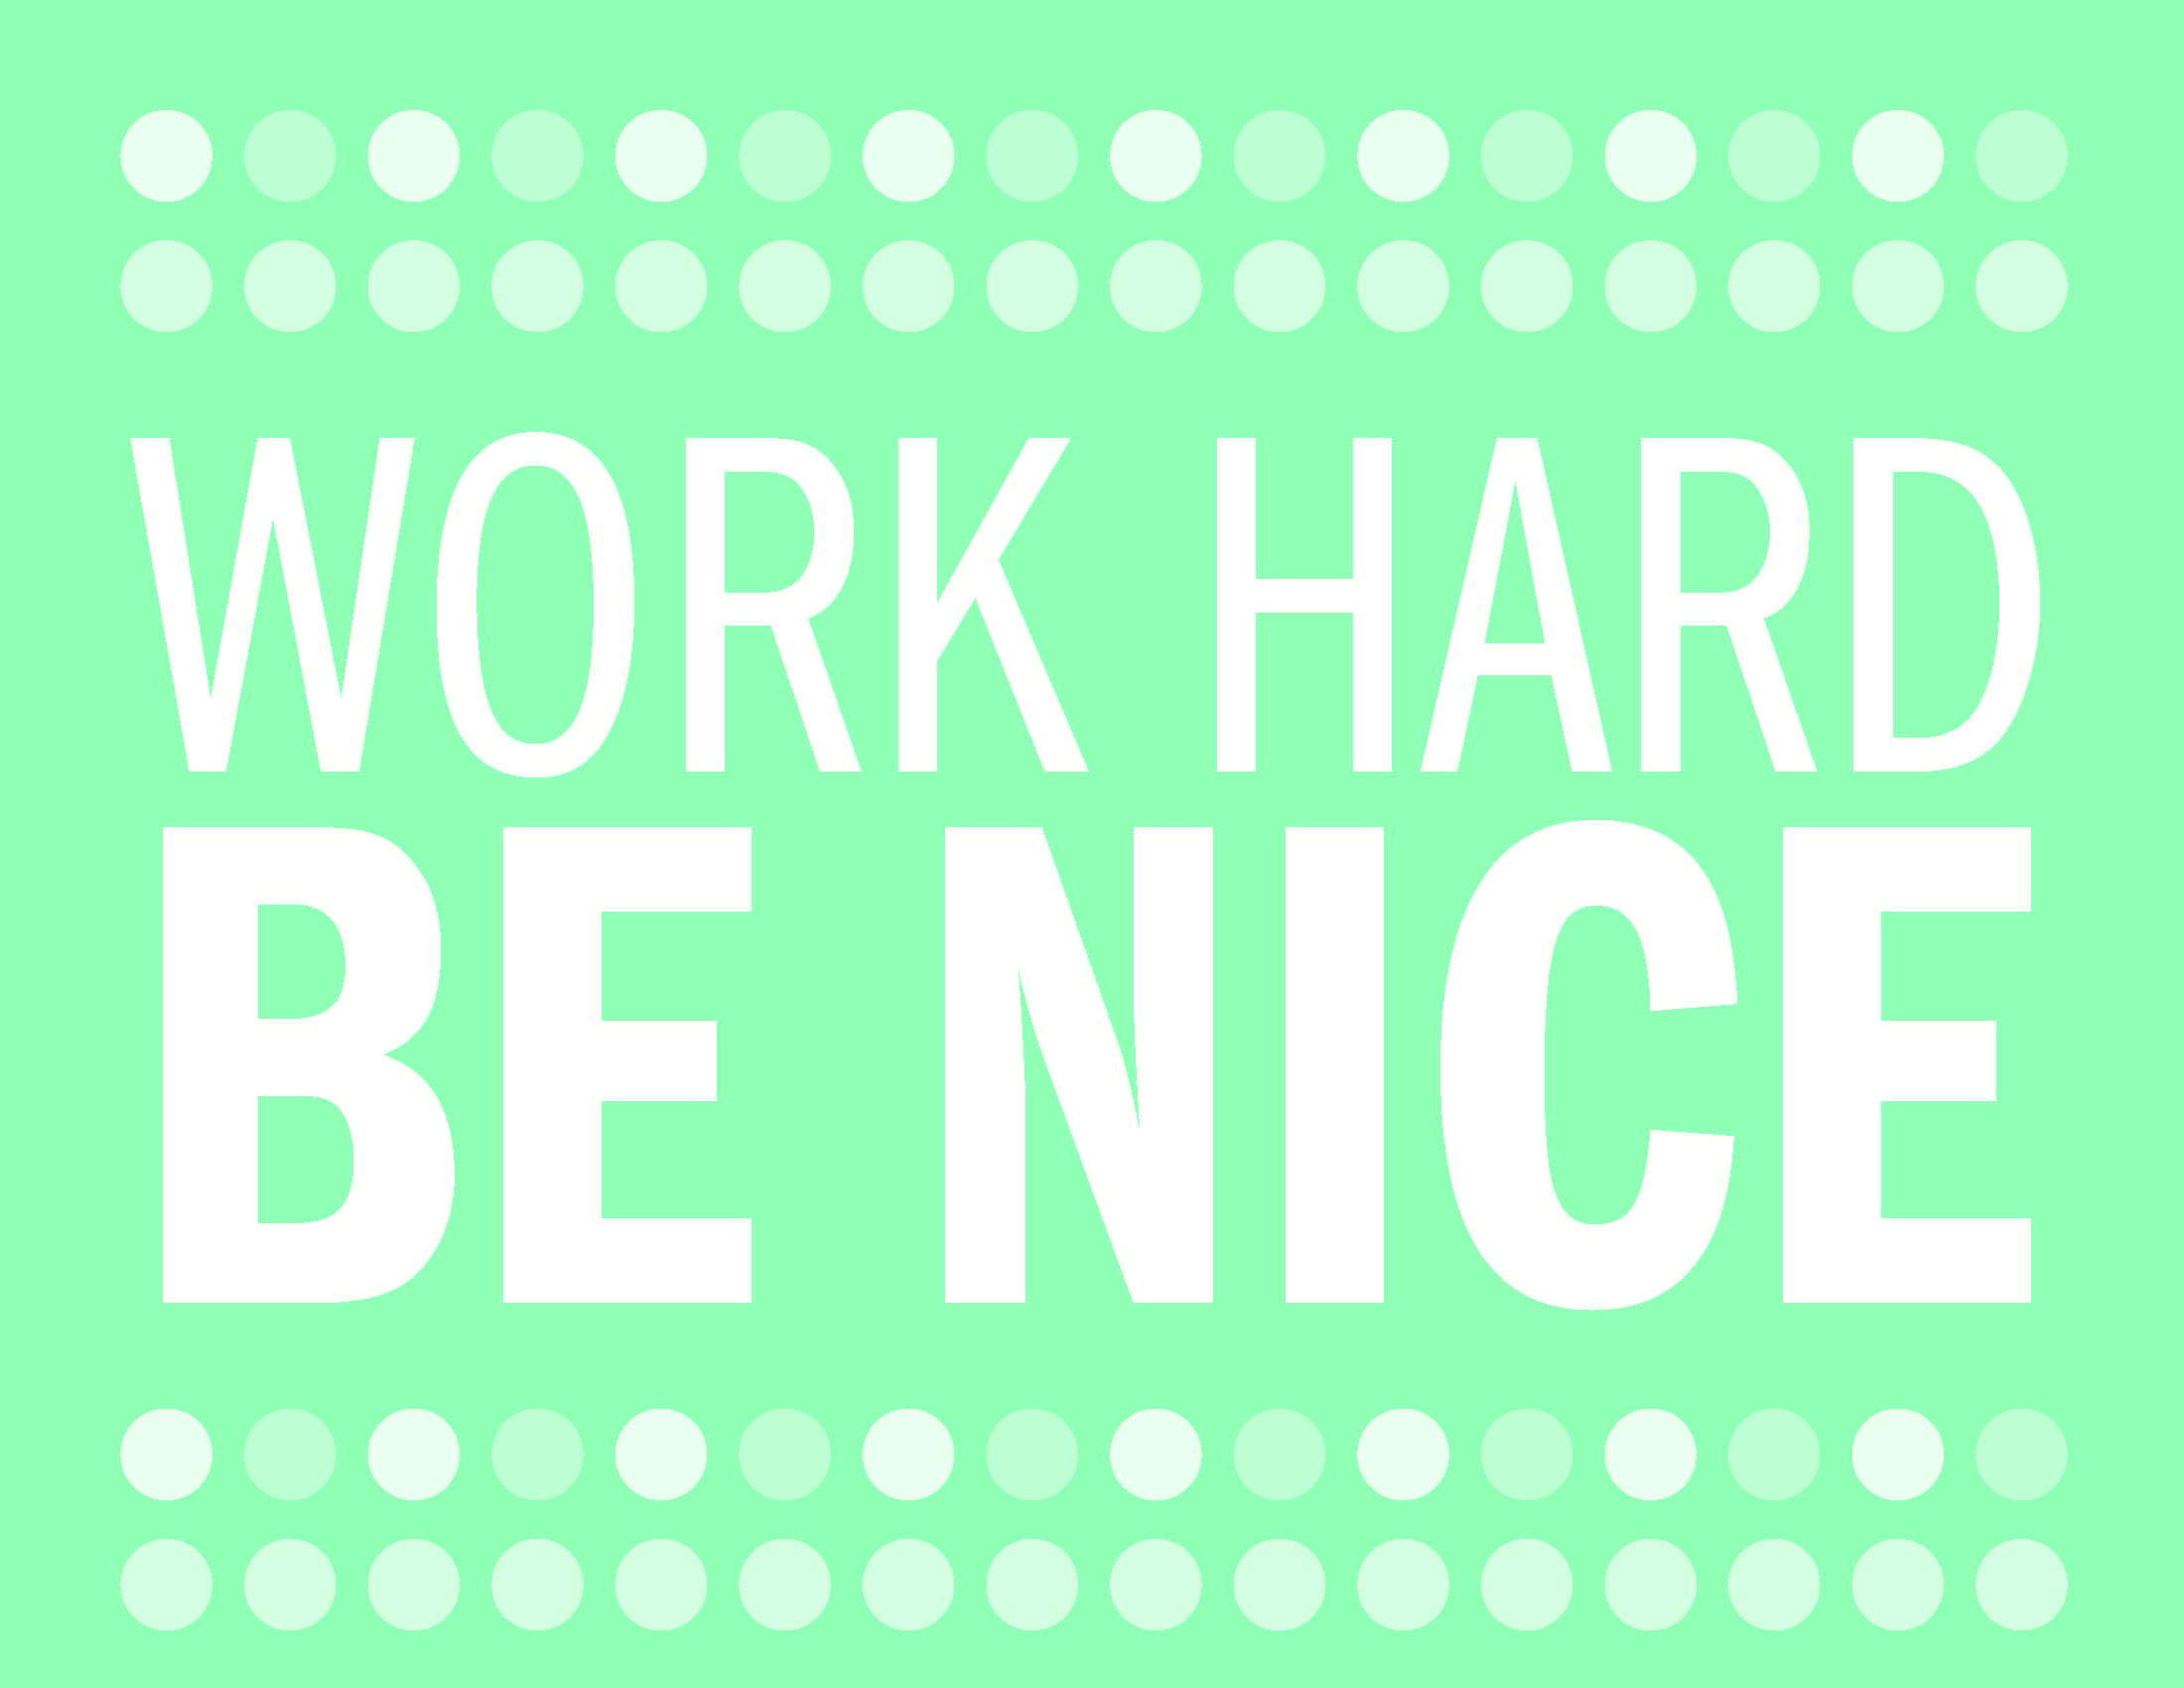 Work Hard. Be Nice. classroom poster. From Scholastic Instructor magazine.